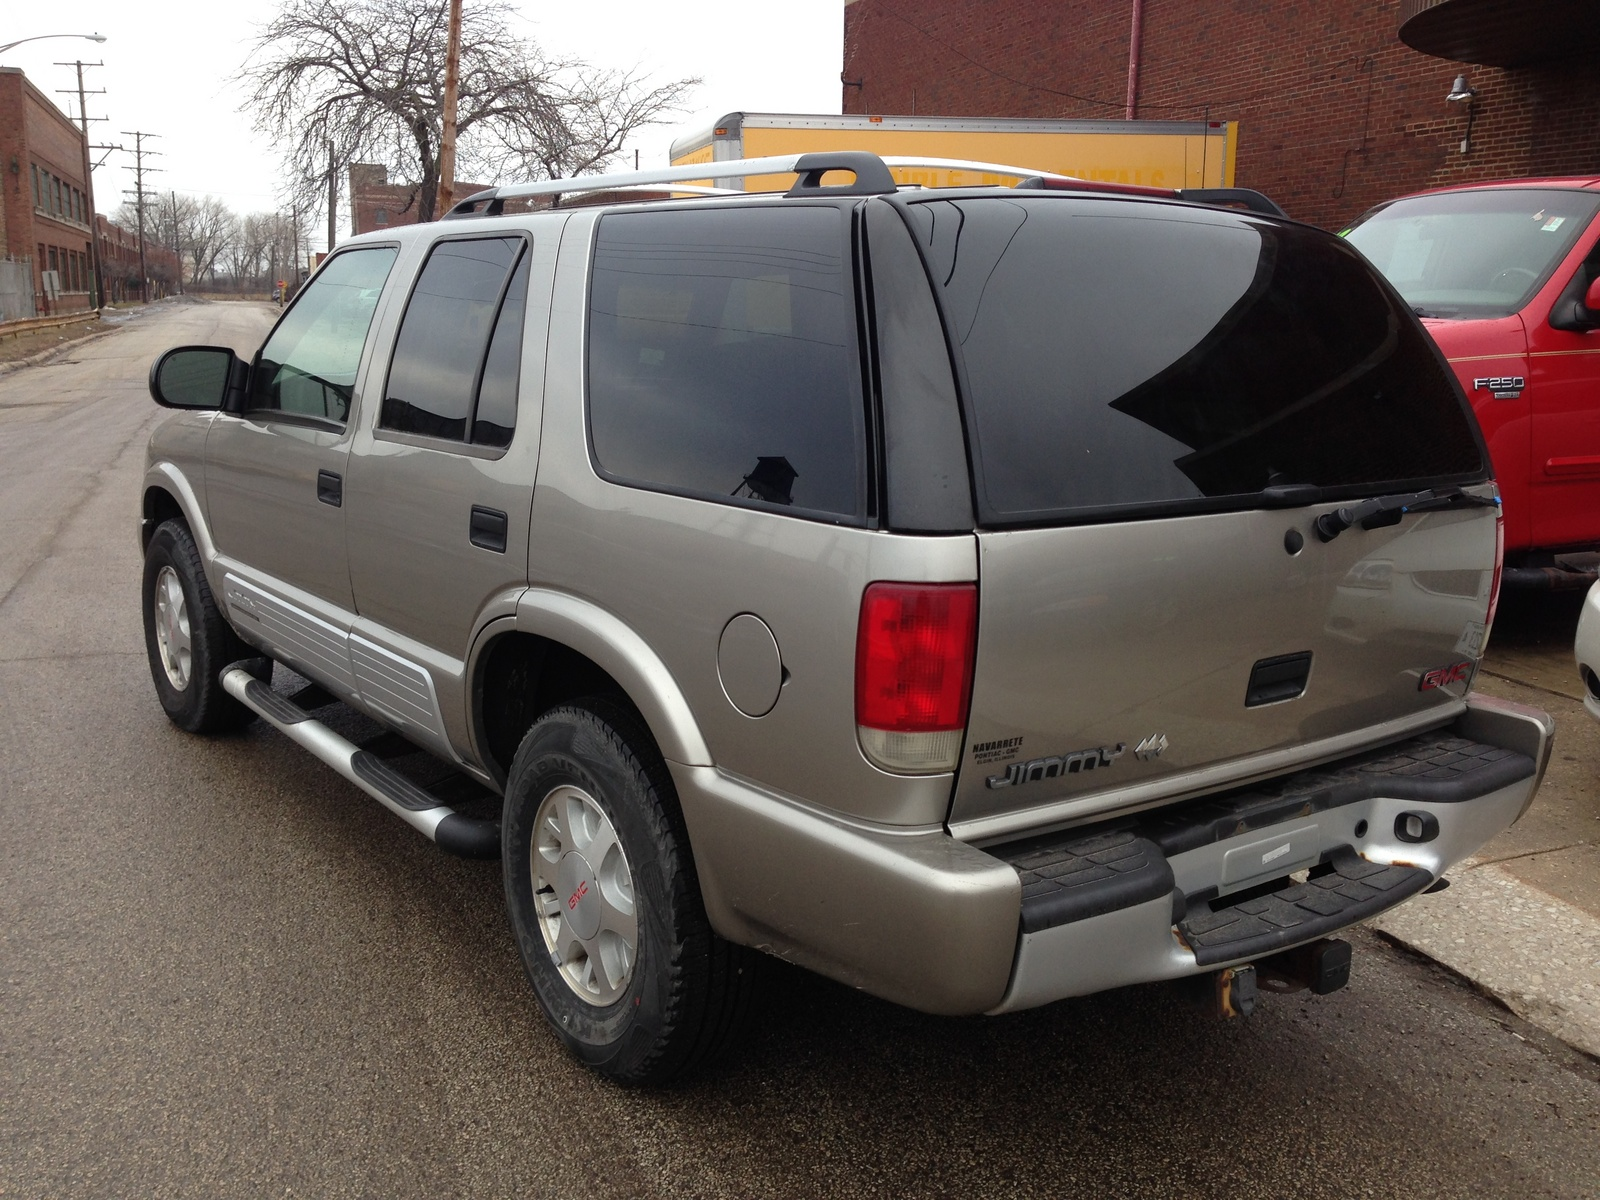 Picture of 2001 gmc jimmy 4 dr diamond edition 4wd suv exterior